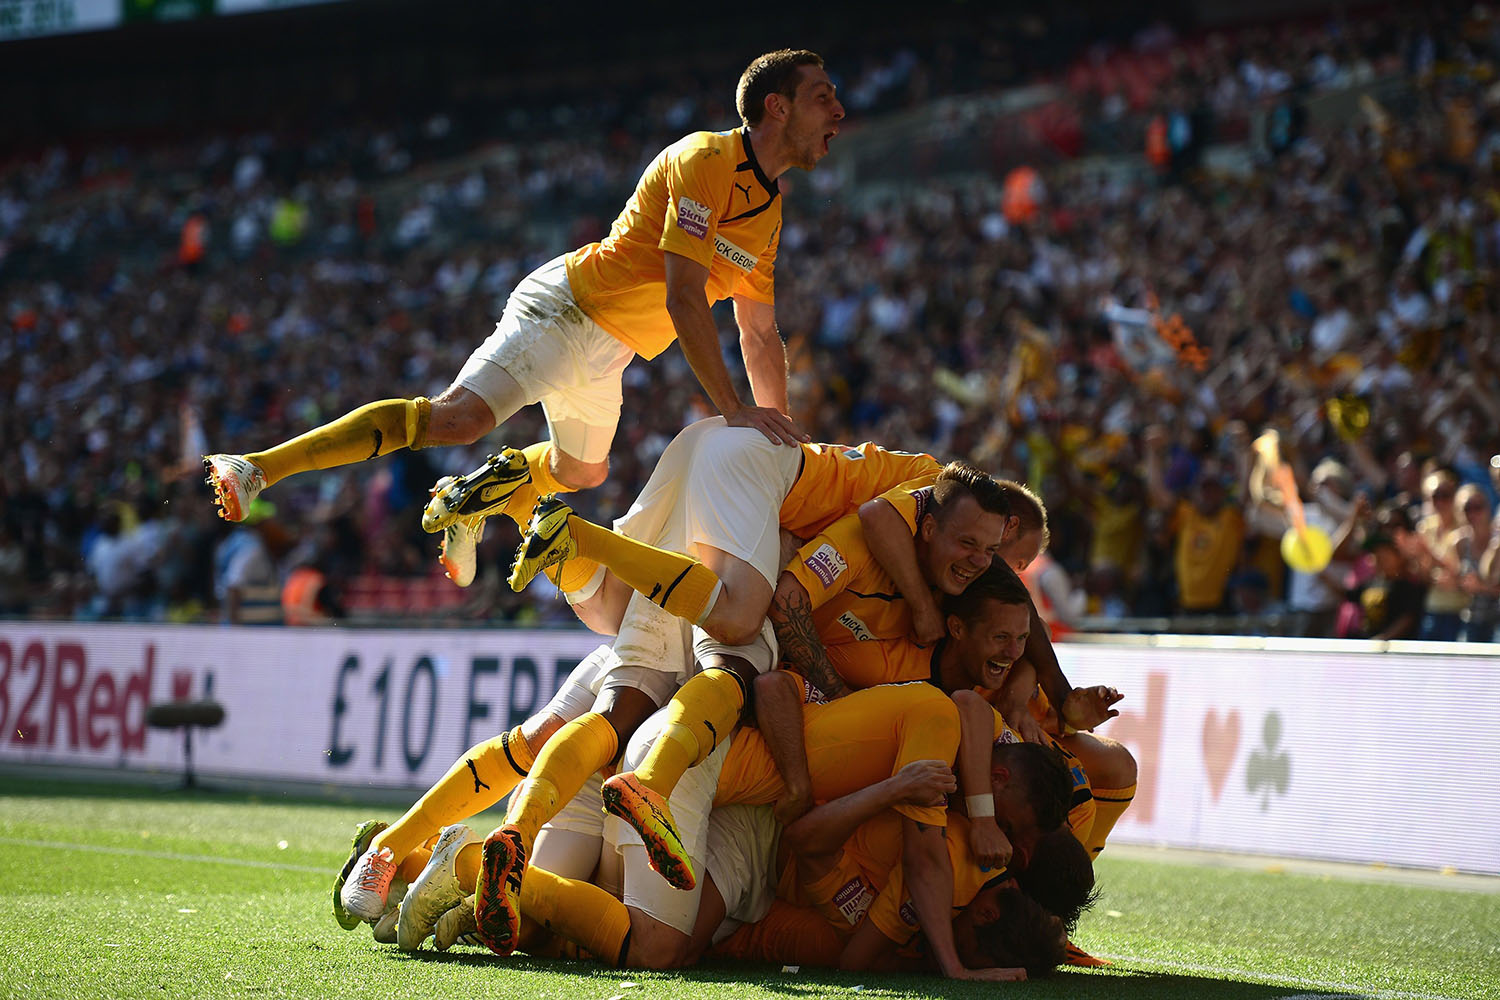 Ryan Donaldson of Cambridge United celebrates his goal with team mates during the Skrill Conference Premier Play-Offs Final between Cambridge United and Gateshead FC at Wembley Stadium in London, on May 18, 2014.